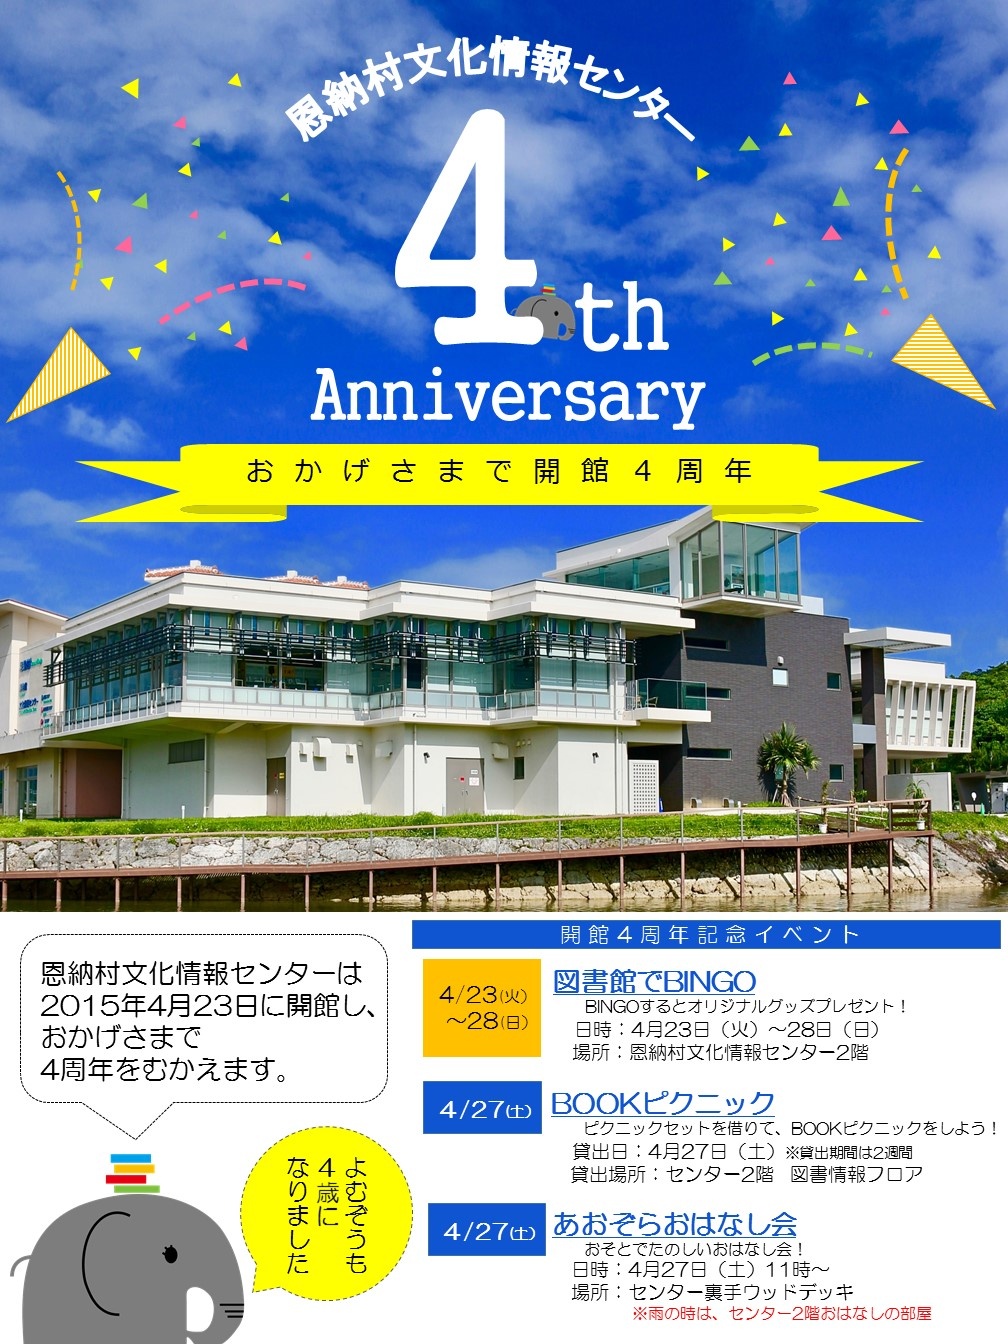 The Onna-son culture information center opening fourth anniversary